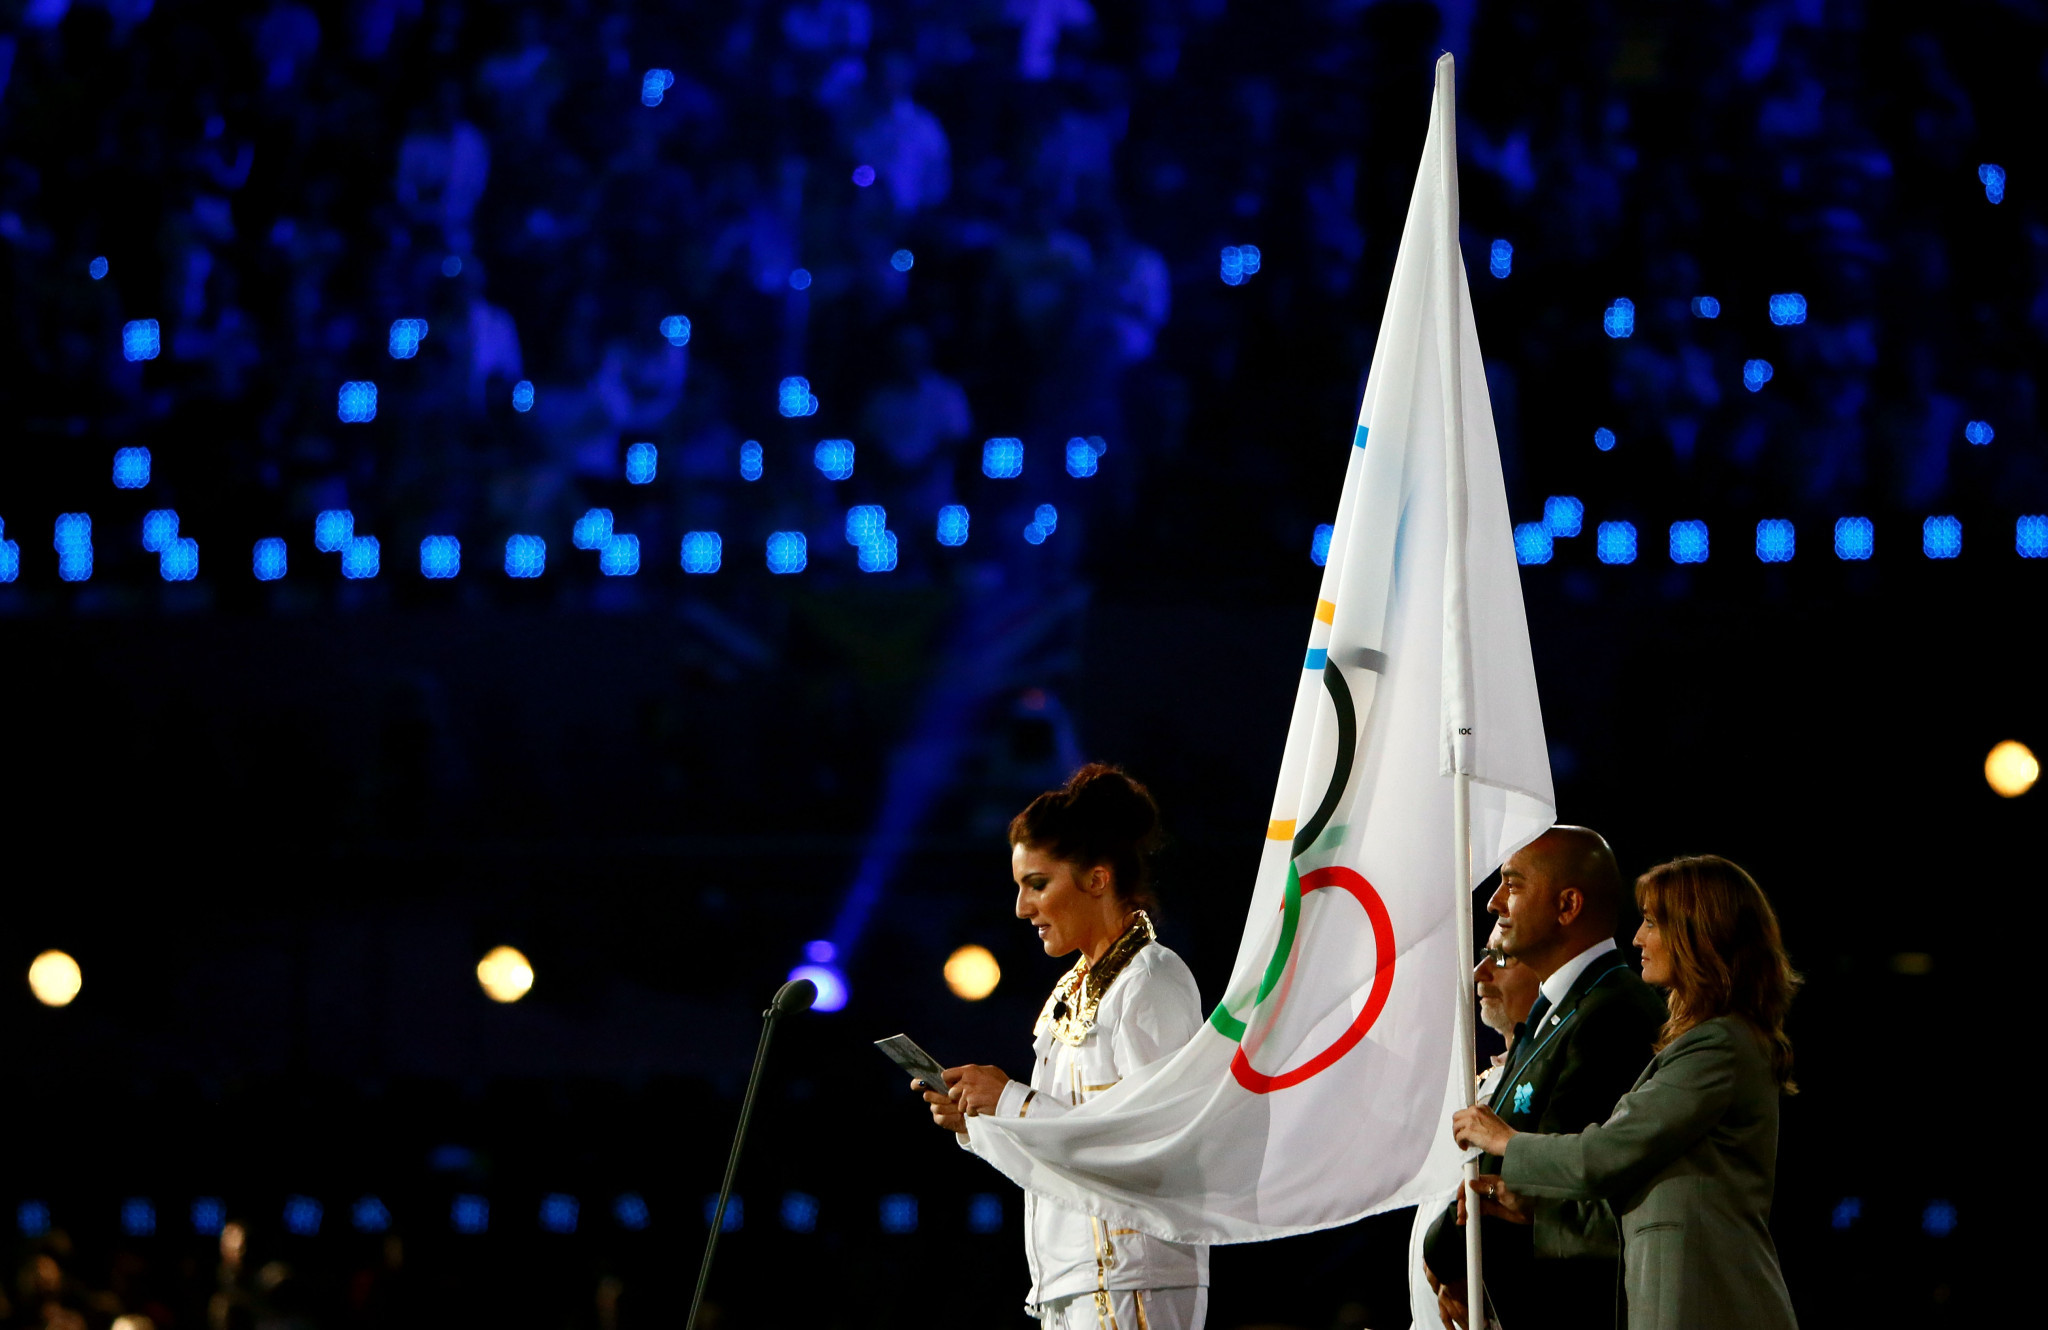 Until now, only athlete took the Olympic oath on behalf of the competitors, as Britain's Sarah Stevenson did at London 2012 ©Getty Images